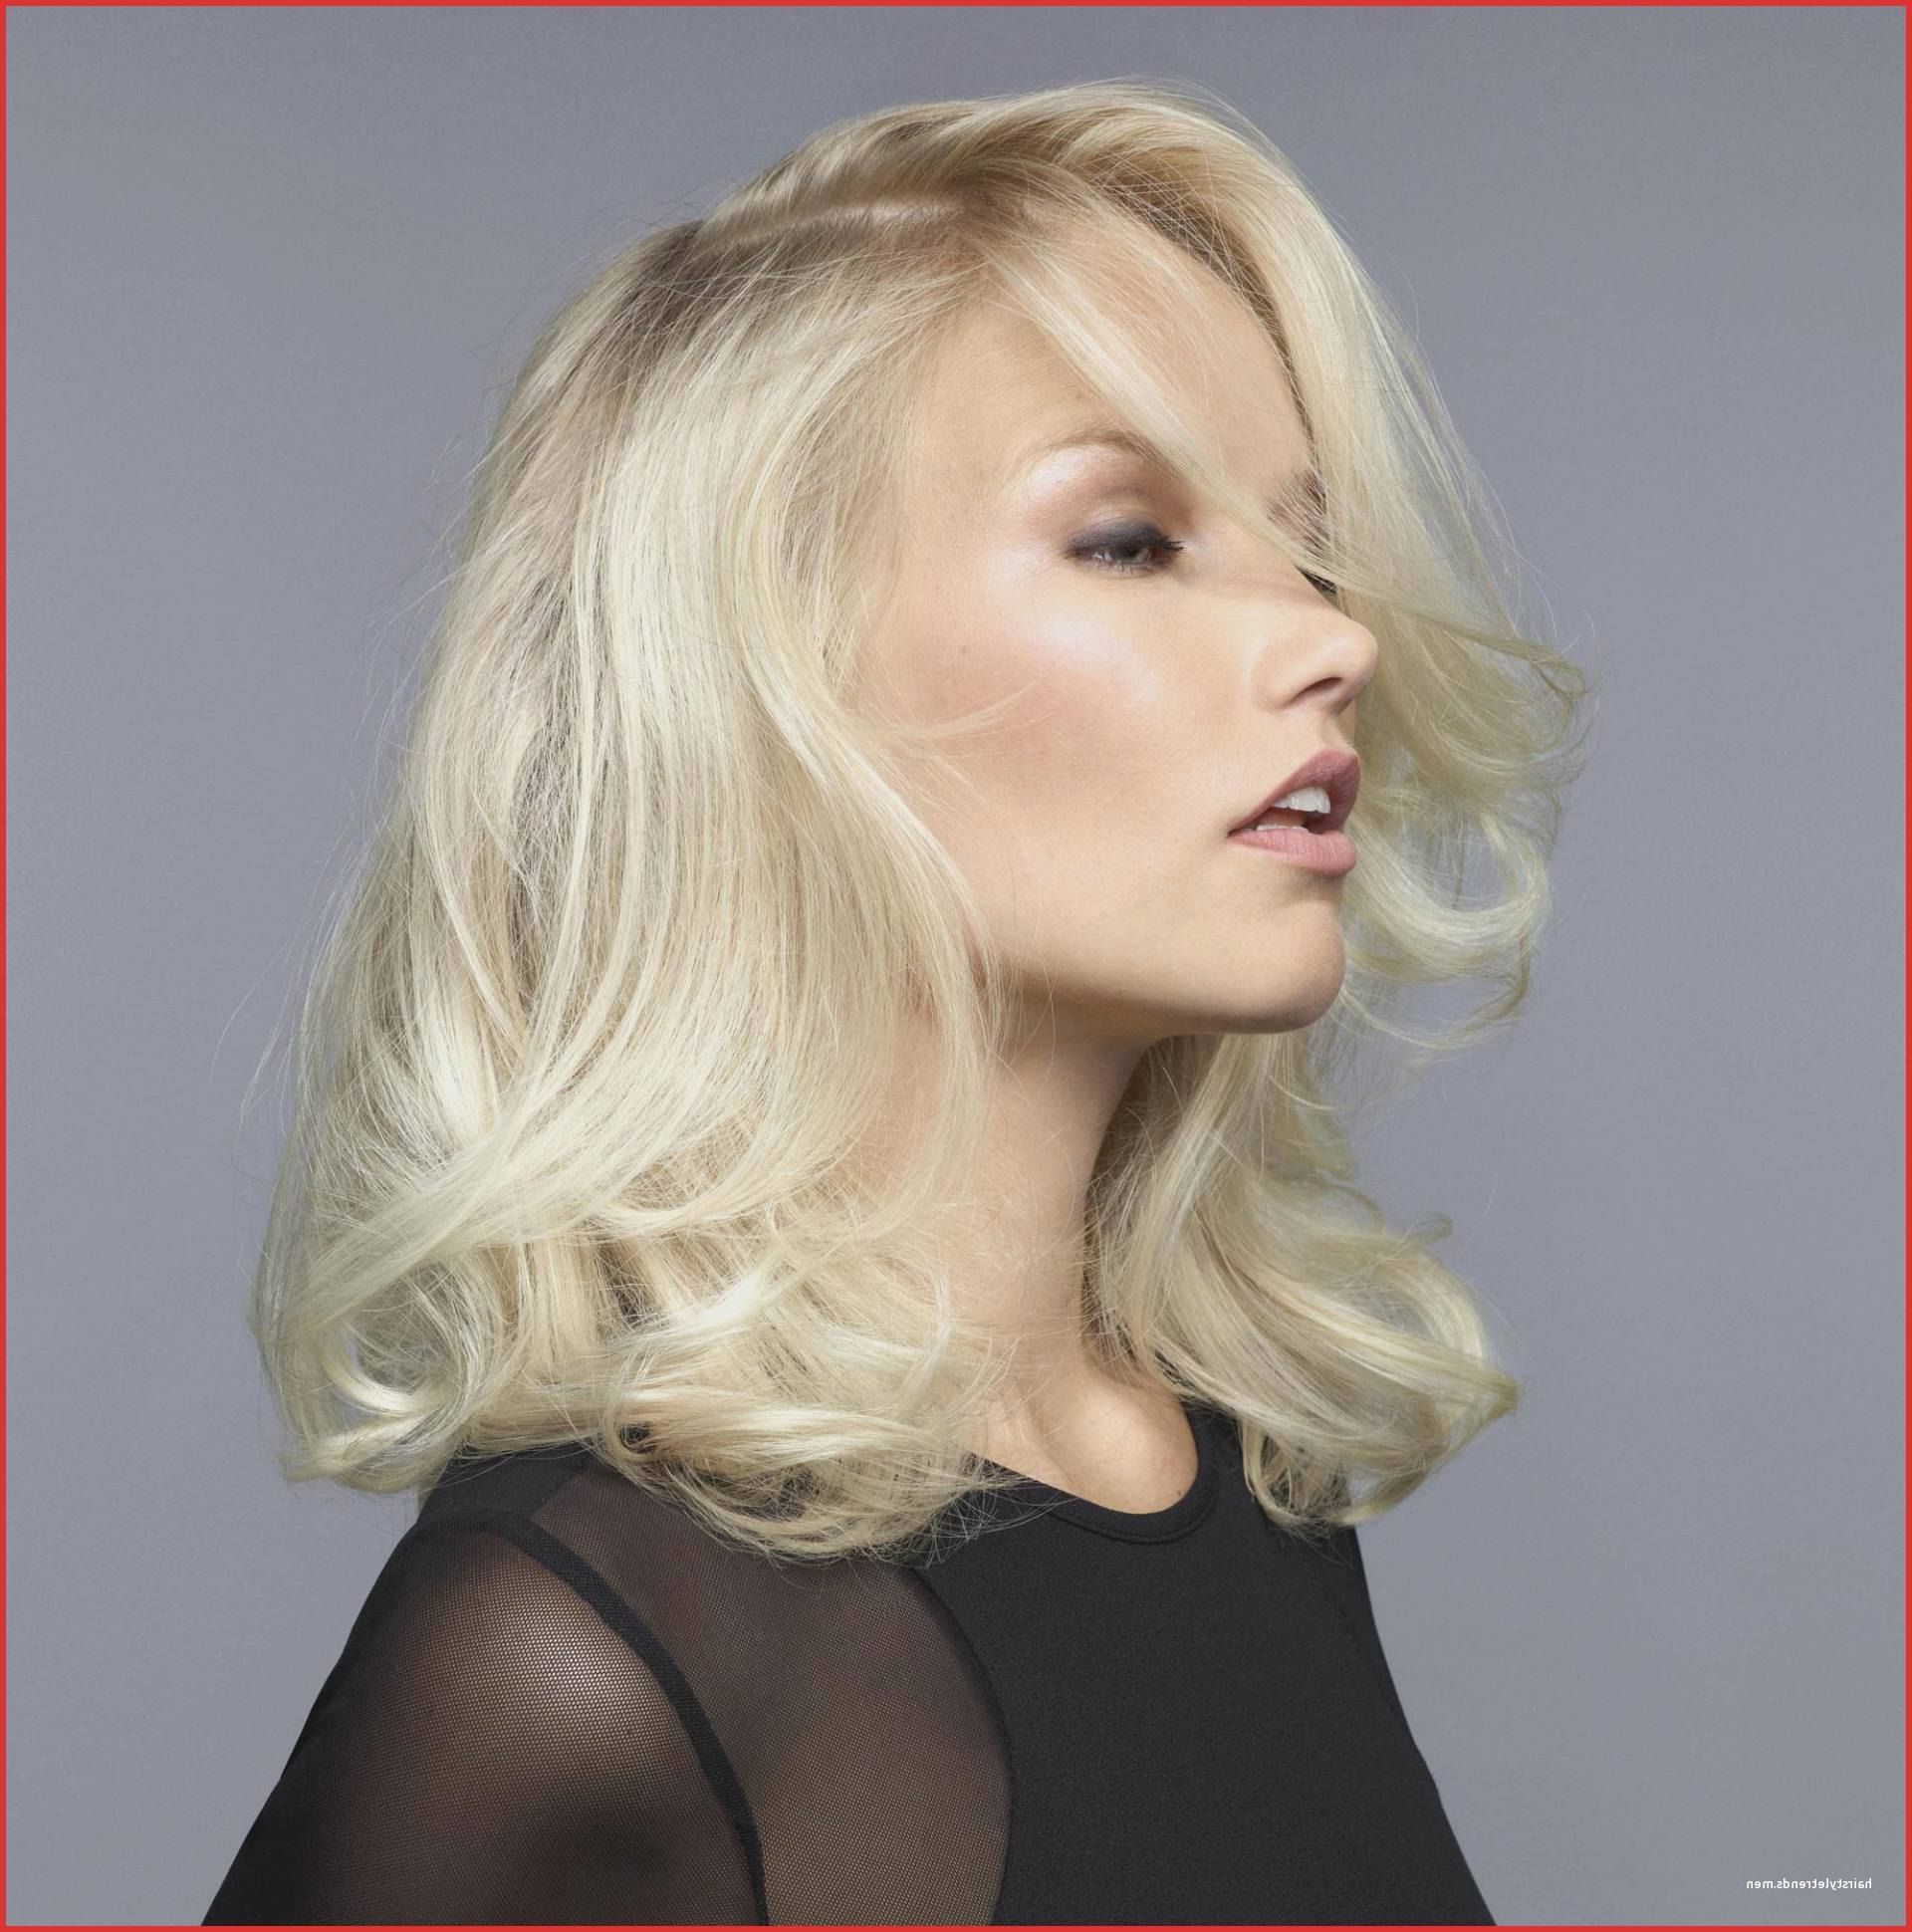 Most Current Medium Haircuts For Glasses Regarding 19 Medium Length Hairstyles For Over 50 With Glasses (View 8 of 20)